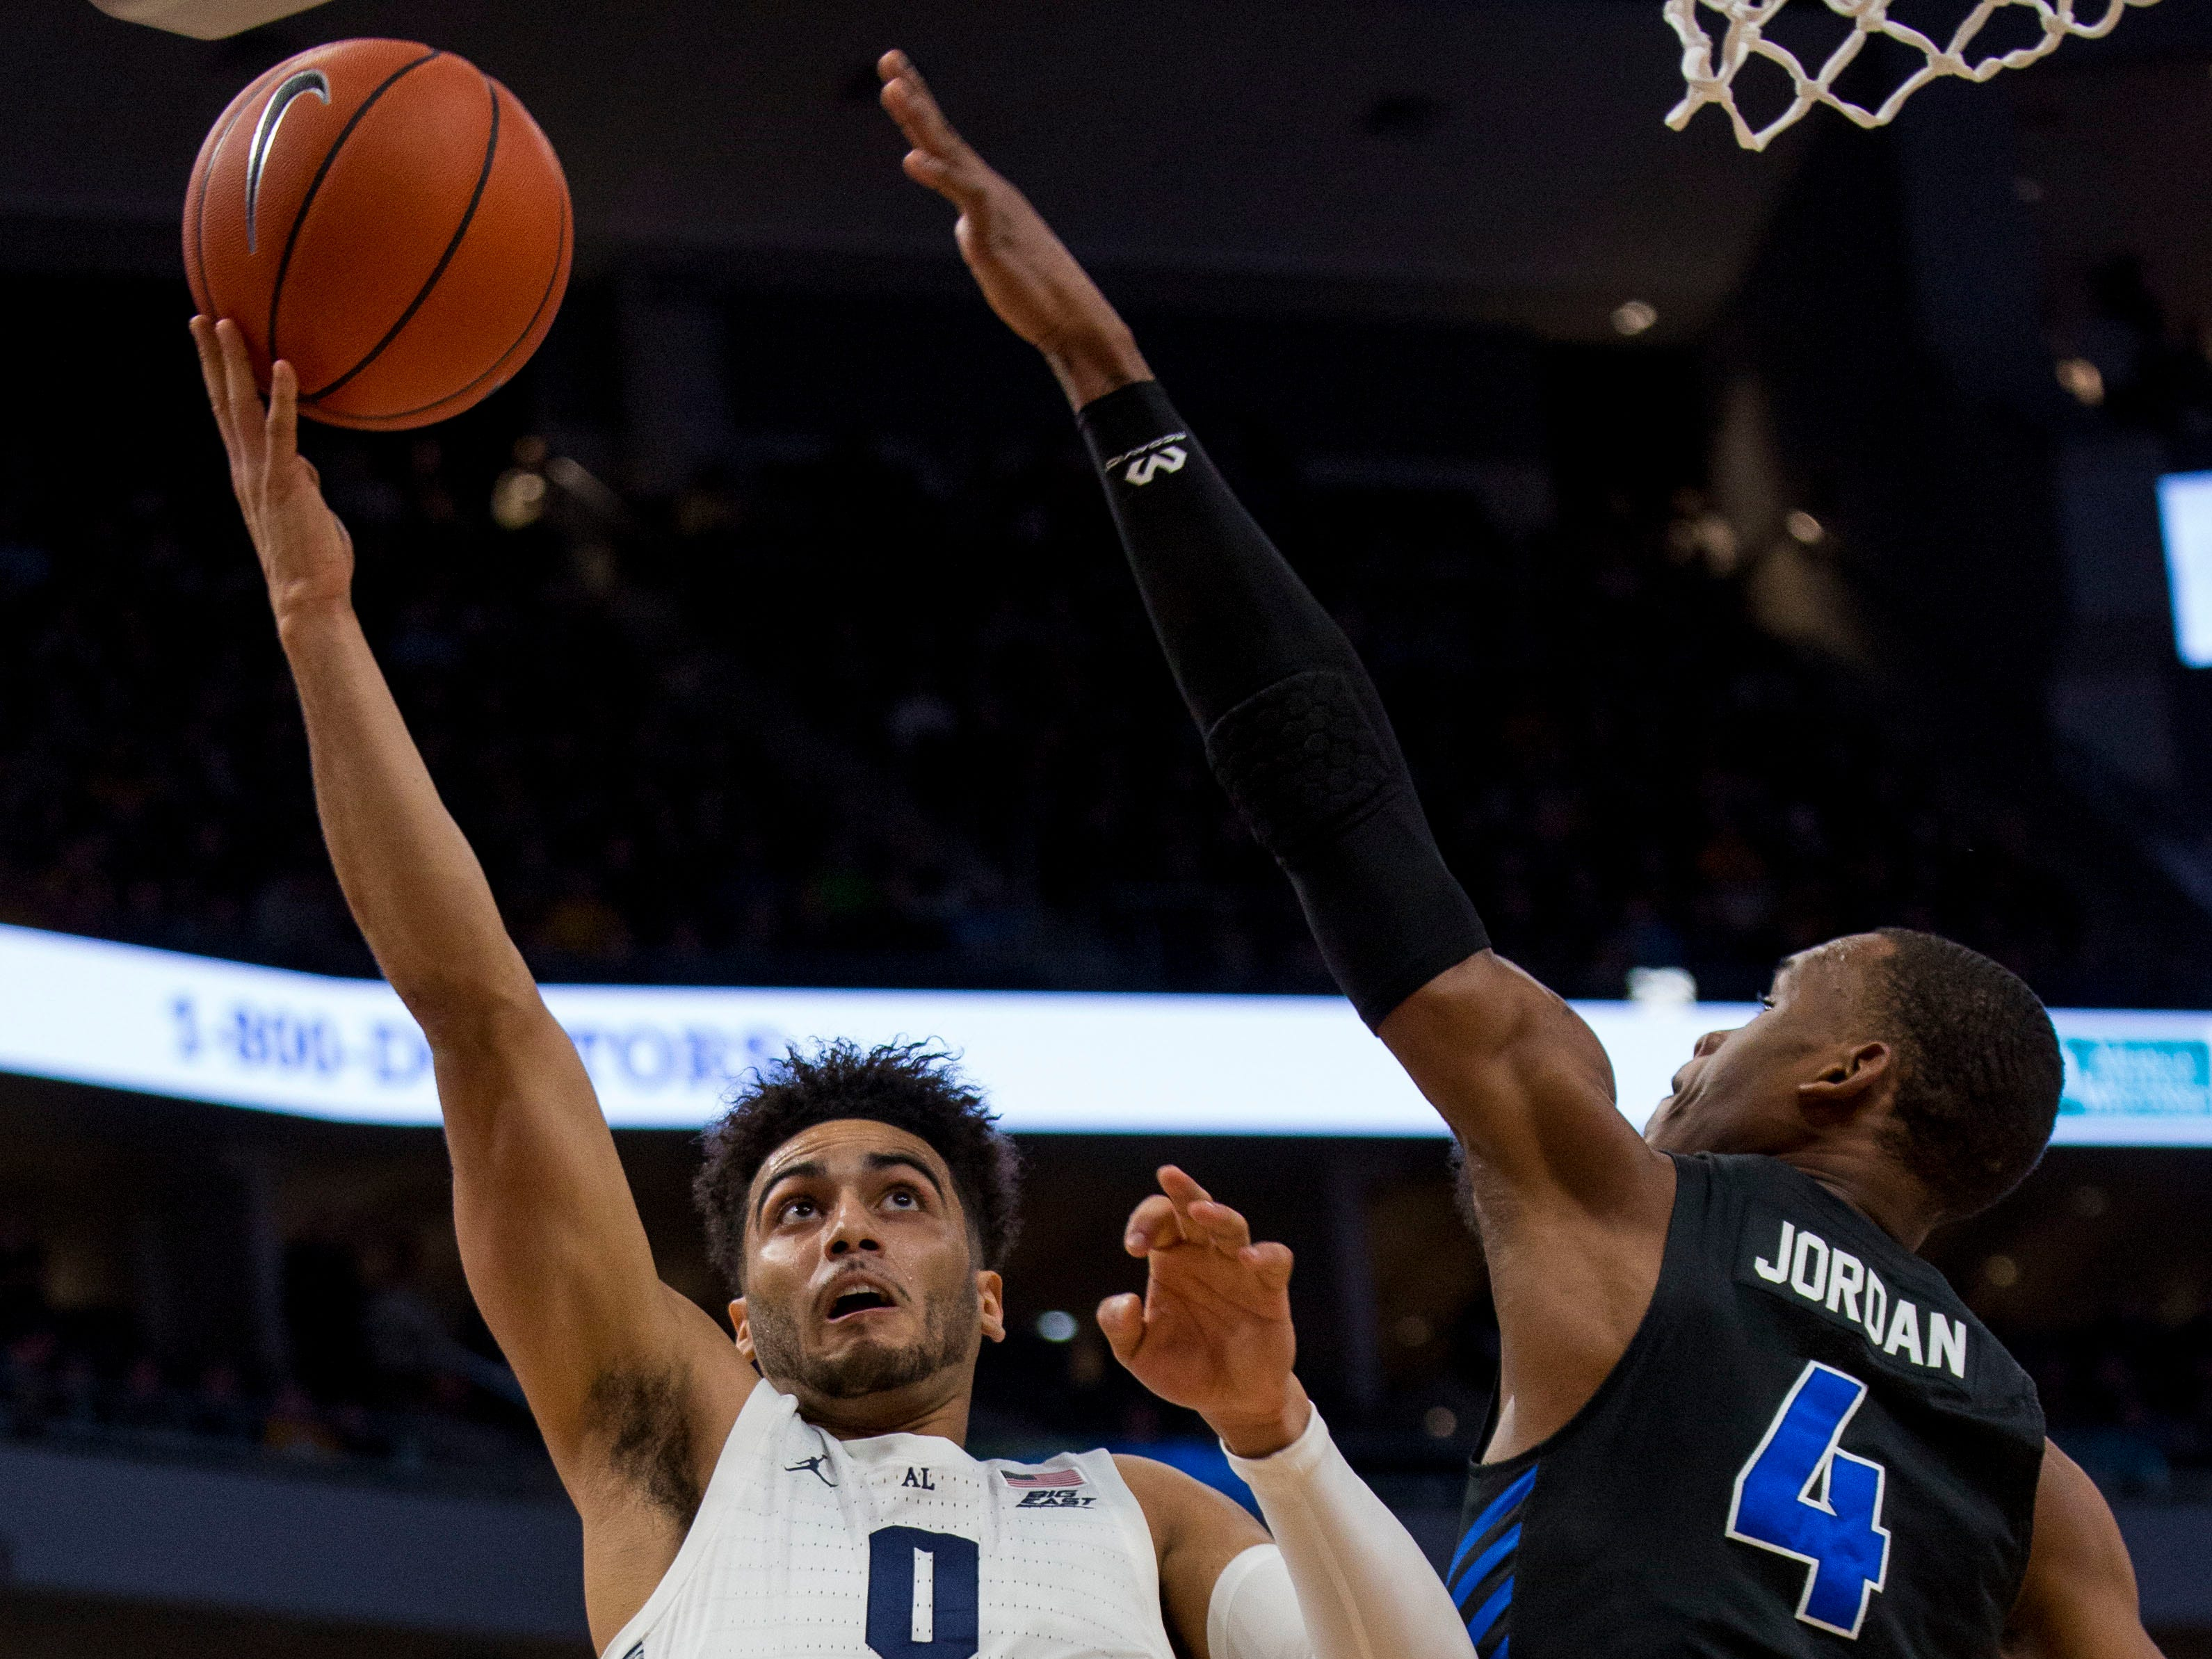 Marquette guard Markus Howard goes up for a shot against Buffalo guard Davonta Jordan during the first half Friday night.